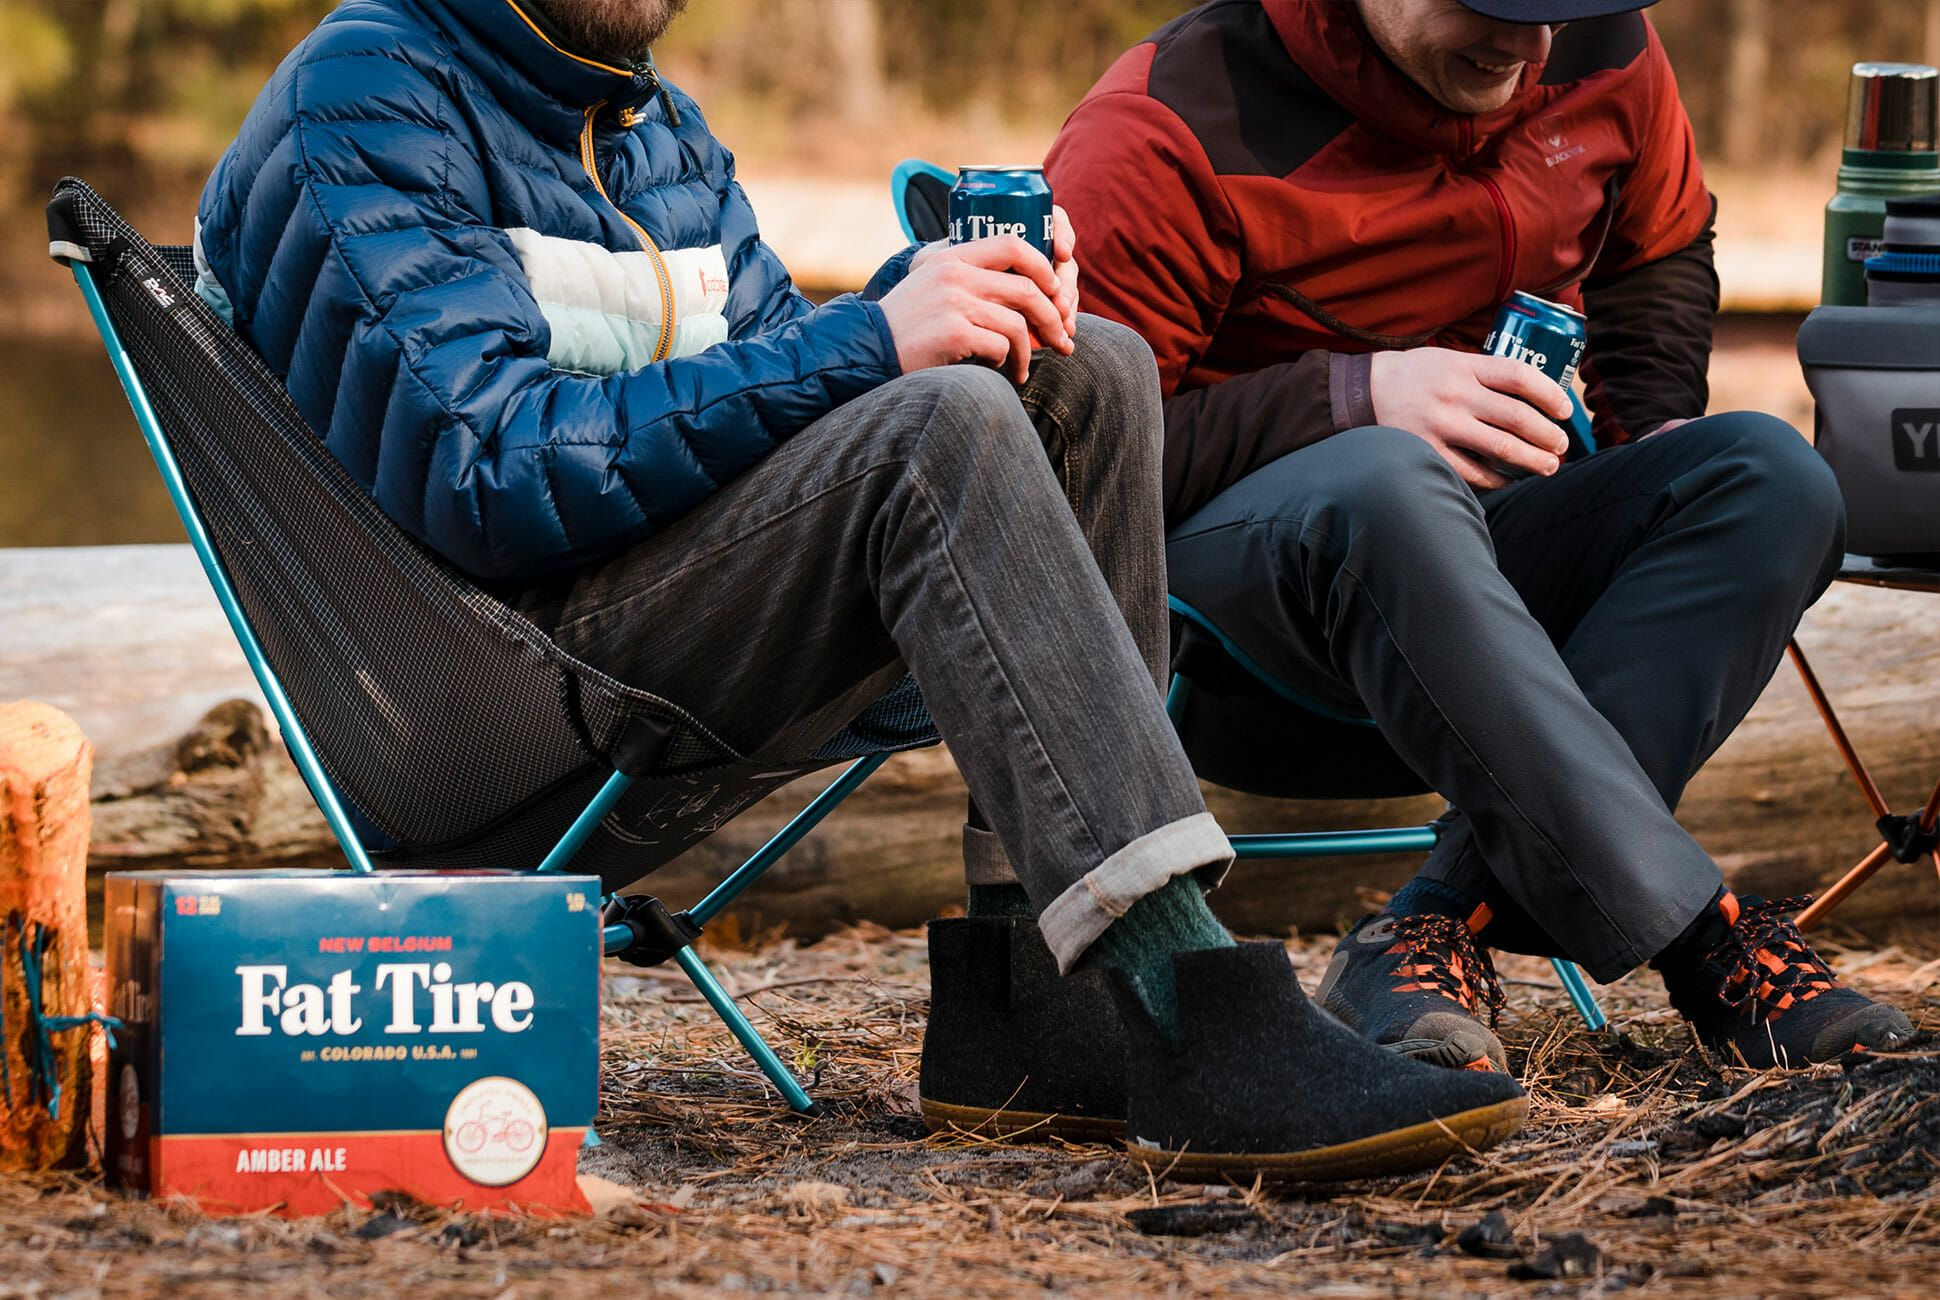 eight-camping-updates-gear-patrol-chairs